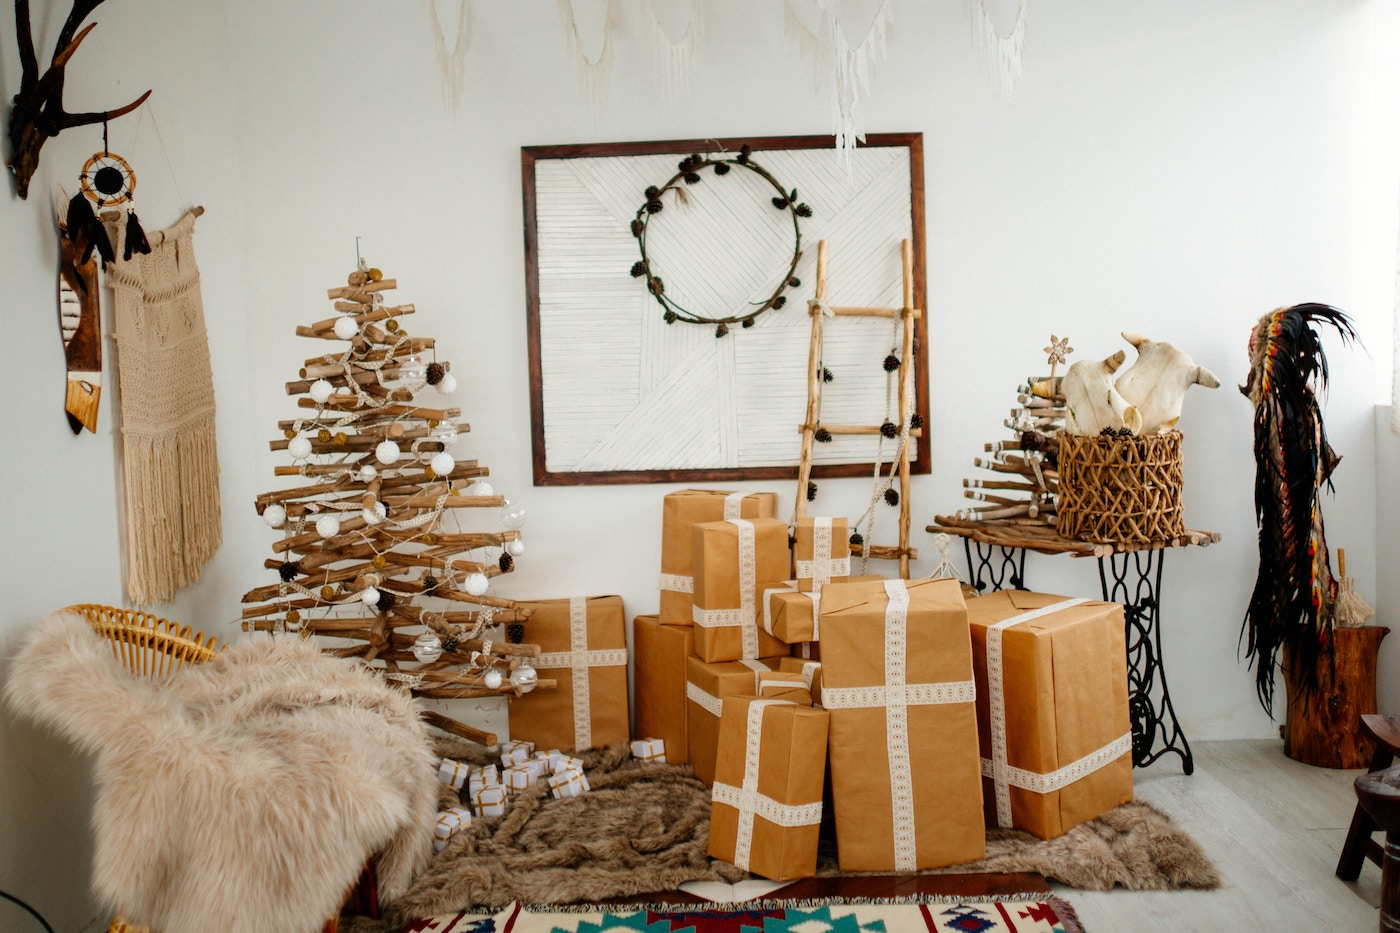 Alternative fake trees made from recycled materials are the most sustainable christmas tree option